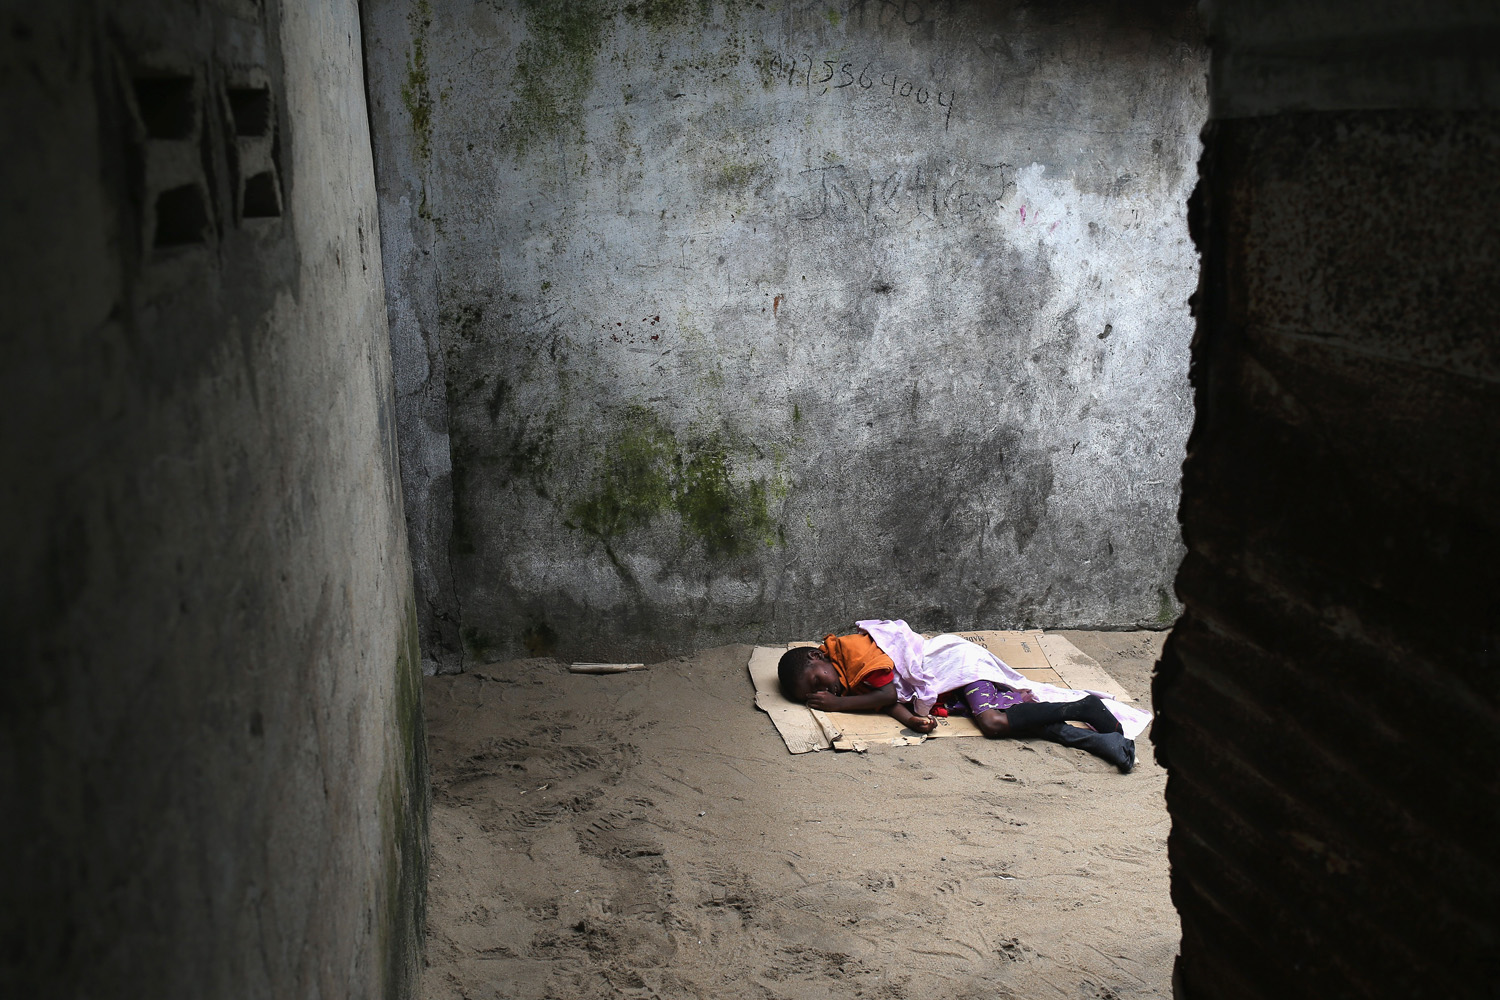 Aug. 19, 2014. A very sick Saah Exco, 10, lies in a back alley of the West Point slum in Monrovia, Liberia. The boy was one of the patients that was pulled out of a holding center for suspected Ebola patients when the facility was overrun by a mob on Saturday.